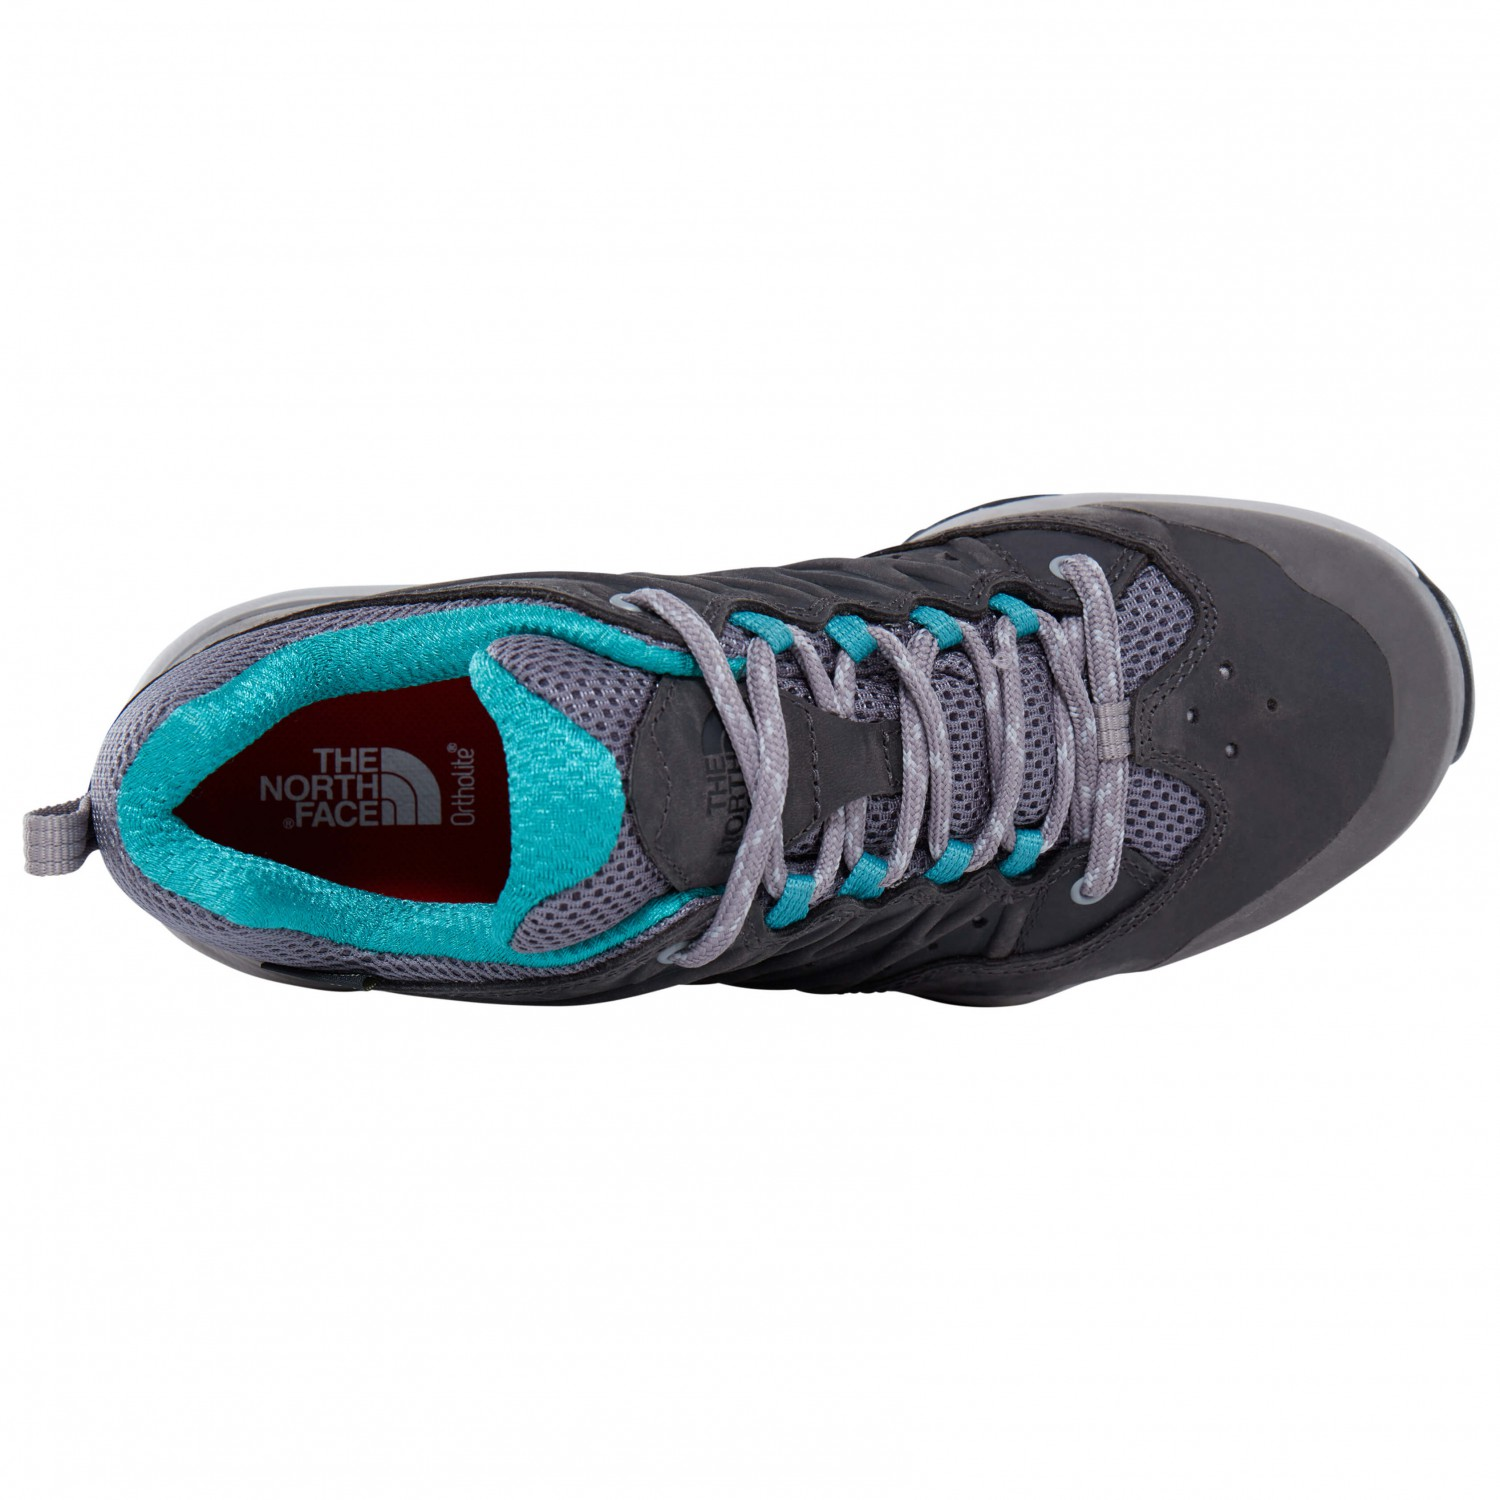 ac88796654a3 ... The North Face - Women s Hedgehog Hike II GTX - Multisport shoes ...